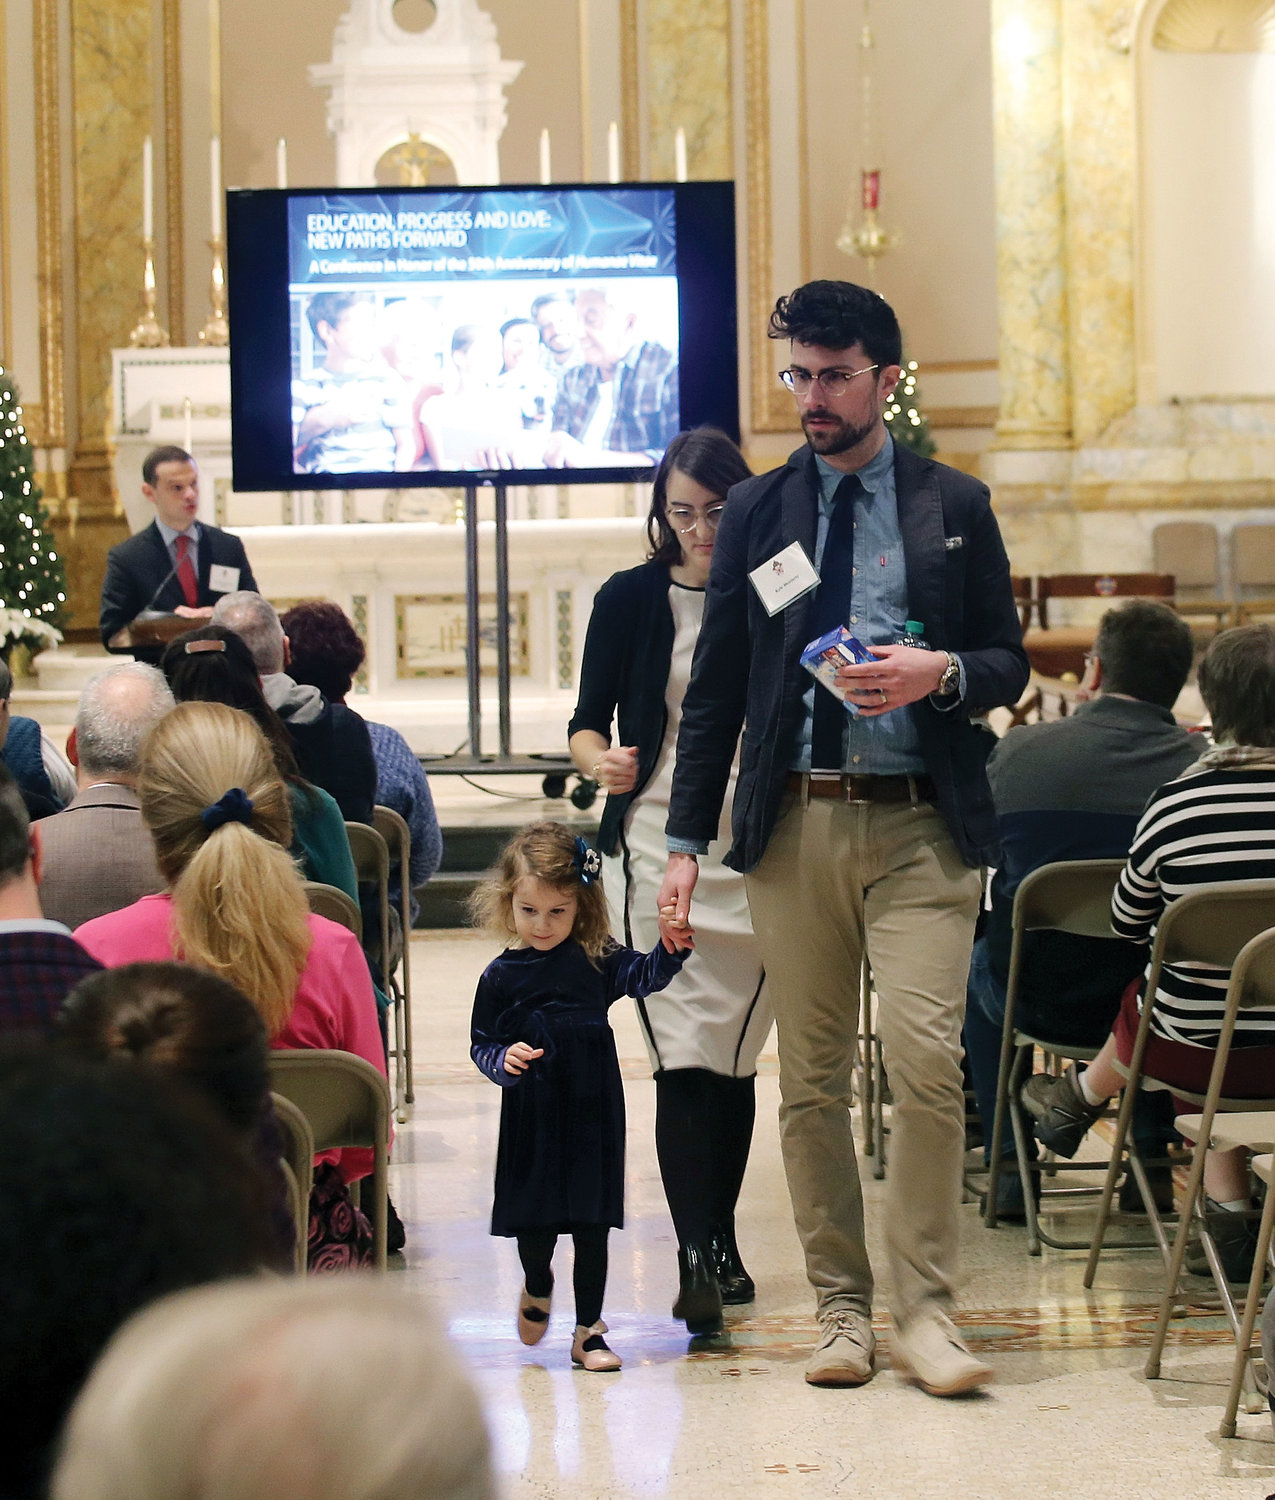 "Witness couple Cassie and Kyle Moriarty leave the podium with their 4-year-old daughter Amata at a conference about the gift of family, titled ""Education, Progress and Love: New Paths Forward,"" at St. Joseph's Seminary in Dunwoodie Dec. 1. The daylong gathering looked at the Catholic vision of family life in an ever-changing world."